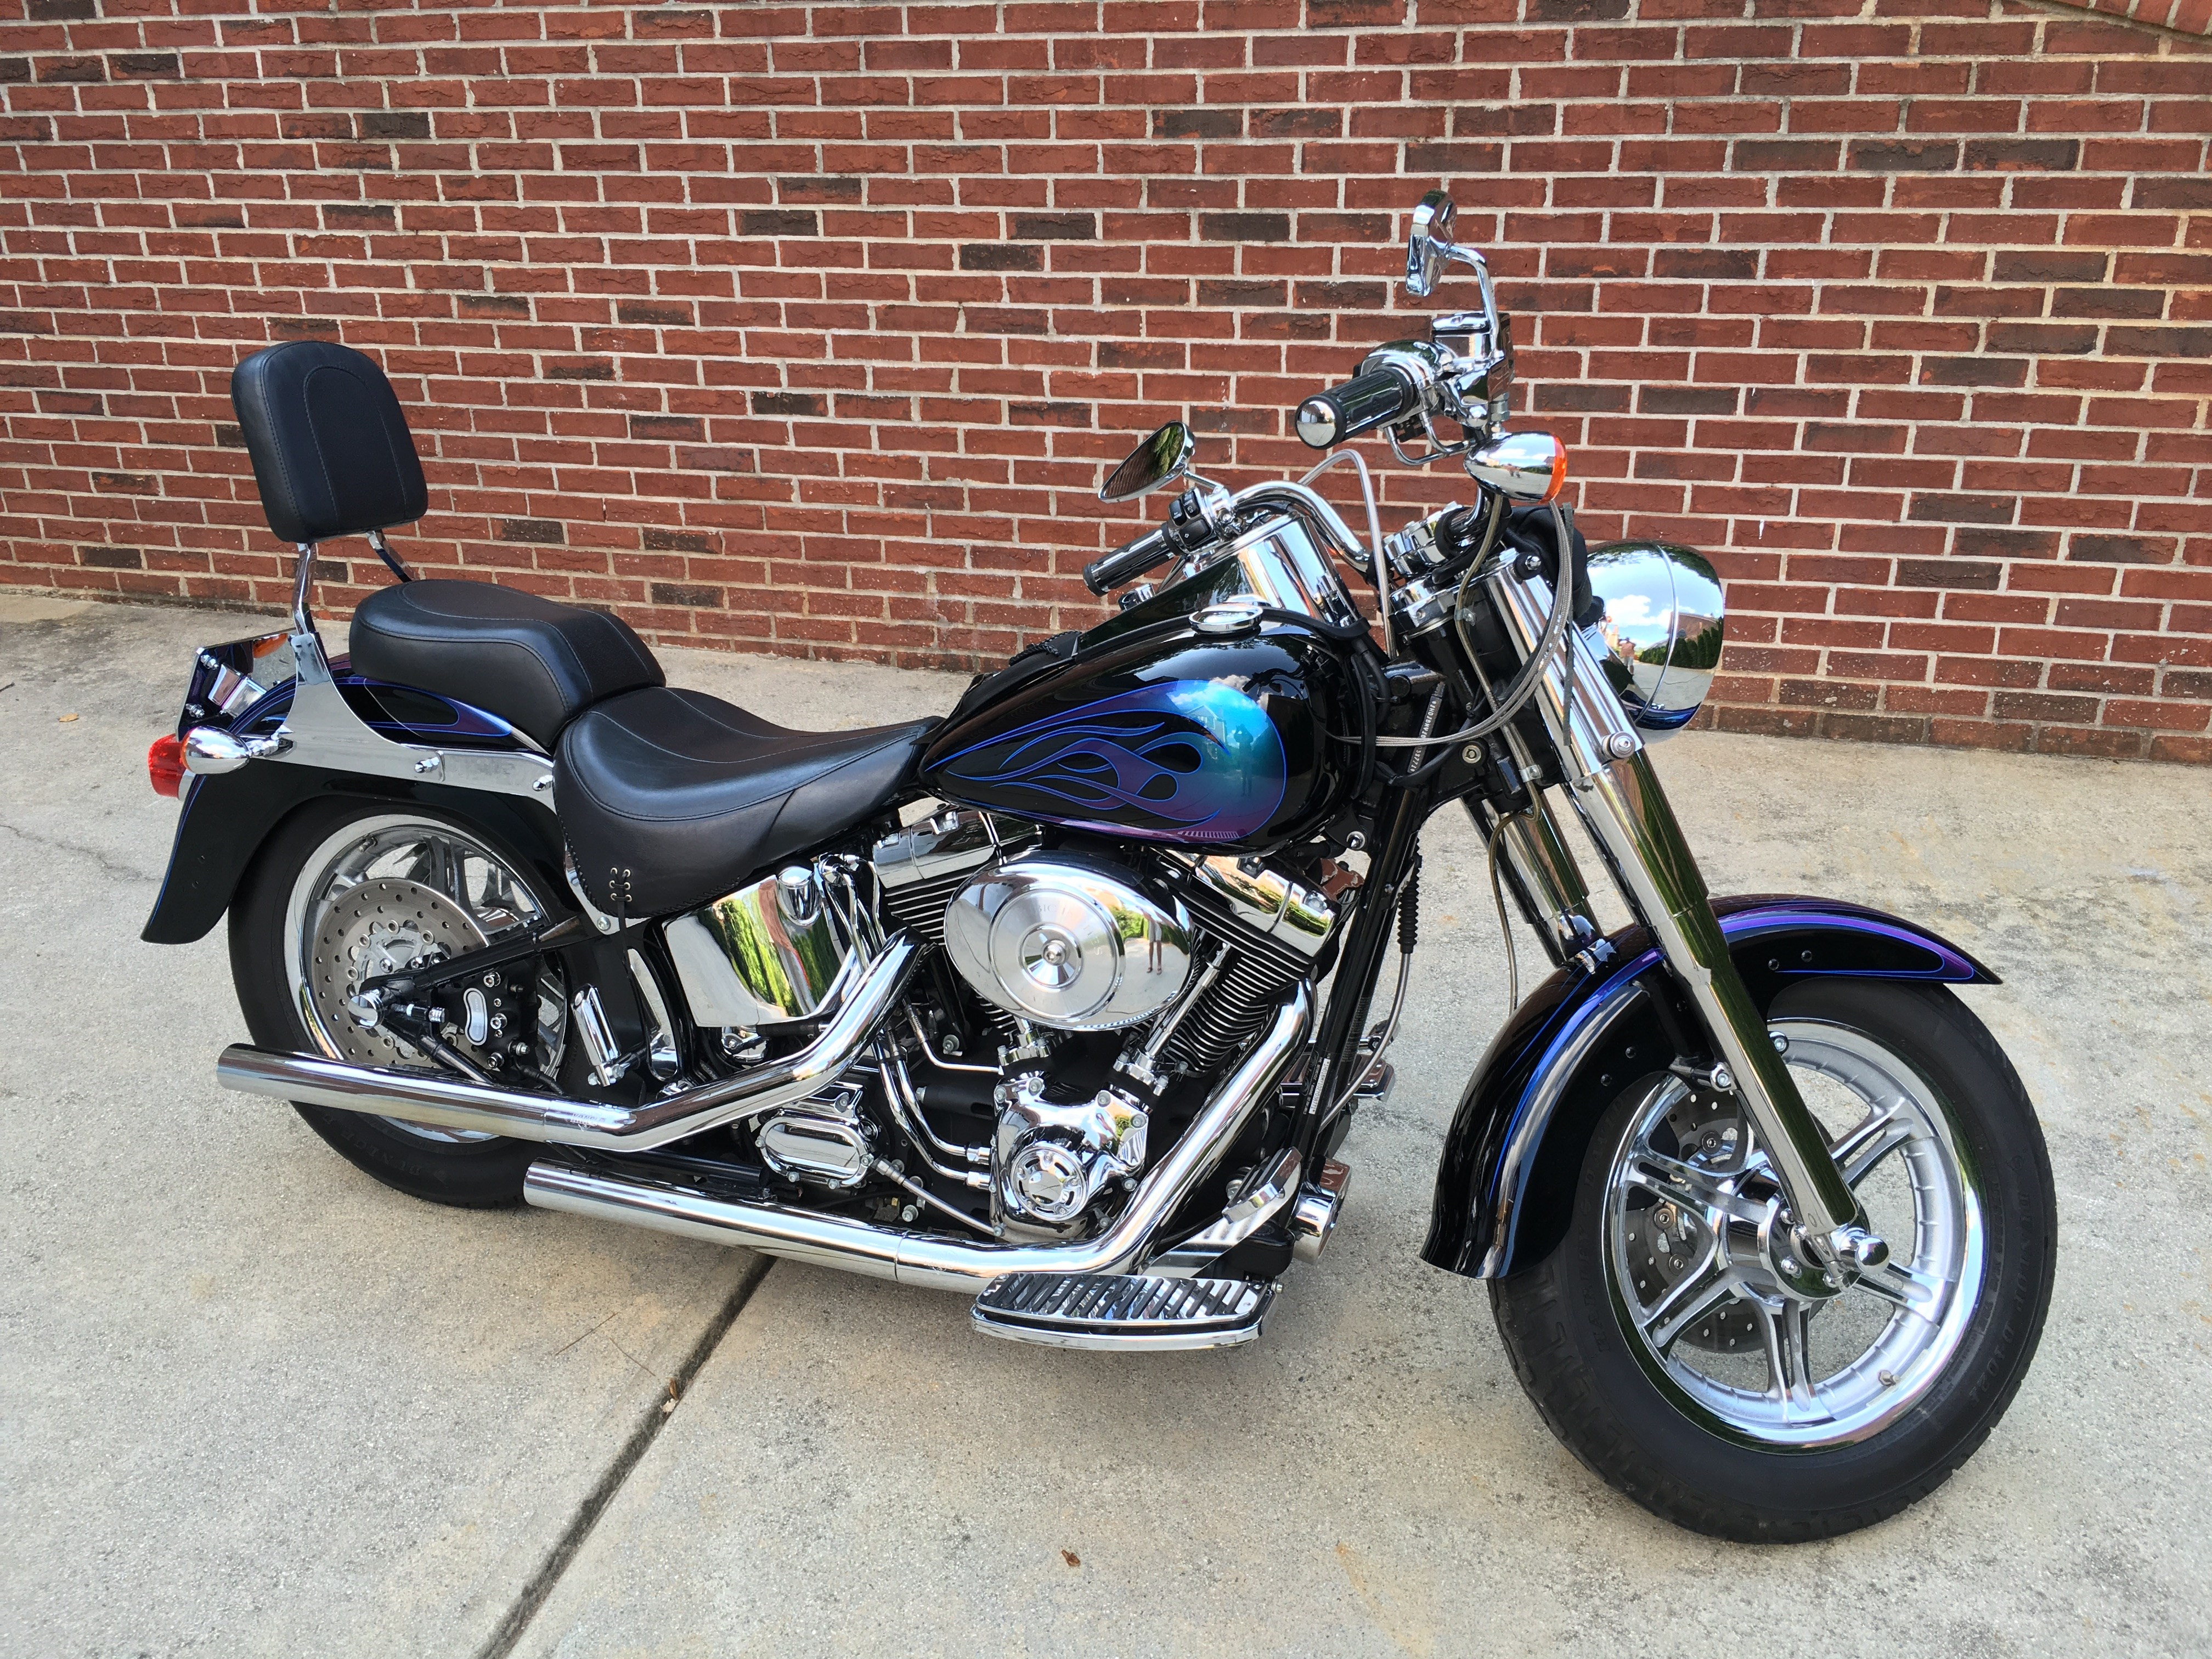 2017 Wide Glide For Sale Texas >> All New & Used Harley-Davidson® Softail Fat Boy® For Sale (943 Bikes, Page 2) | ChopperExchange